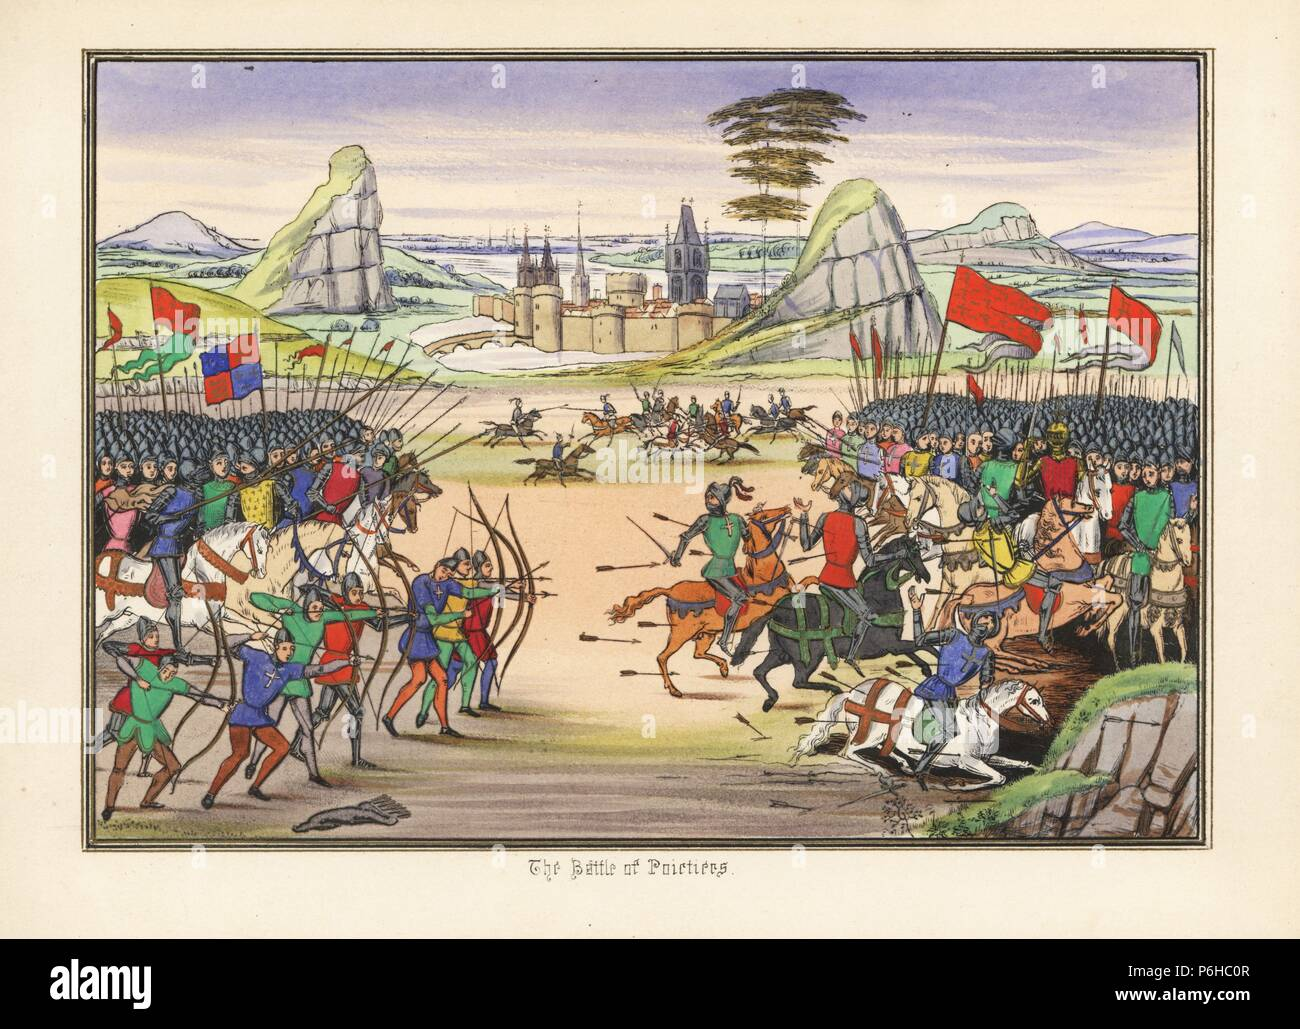 Battle of Poitiers, 1356, between the English under Edward the Black Prince and the French under King Jean II. The miniature depicts the English archers aiming at the horses of the French cavalry. Handcoloured lithograph after an illuminated manuscript from Sir John Froissart's 'Chronicles of England, France, Spain and the Adjoining Countries, from the Latter Part of the Reign of Edward II to the Coronation of Henry IV,' George Routledge, London, 1868. - Stock Image